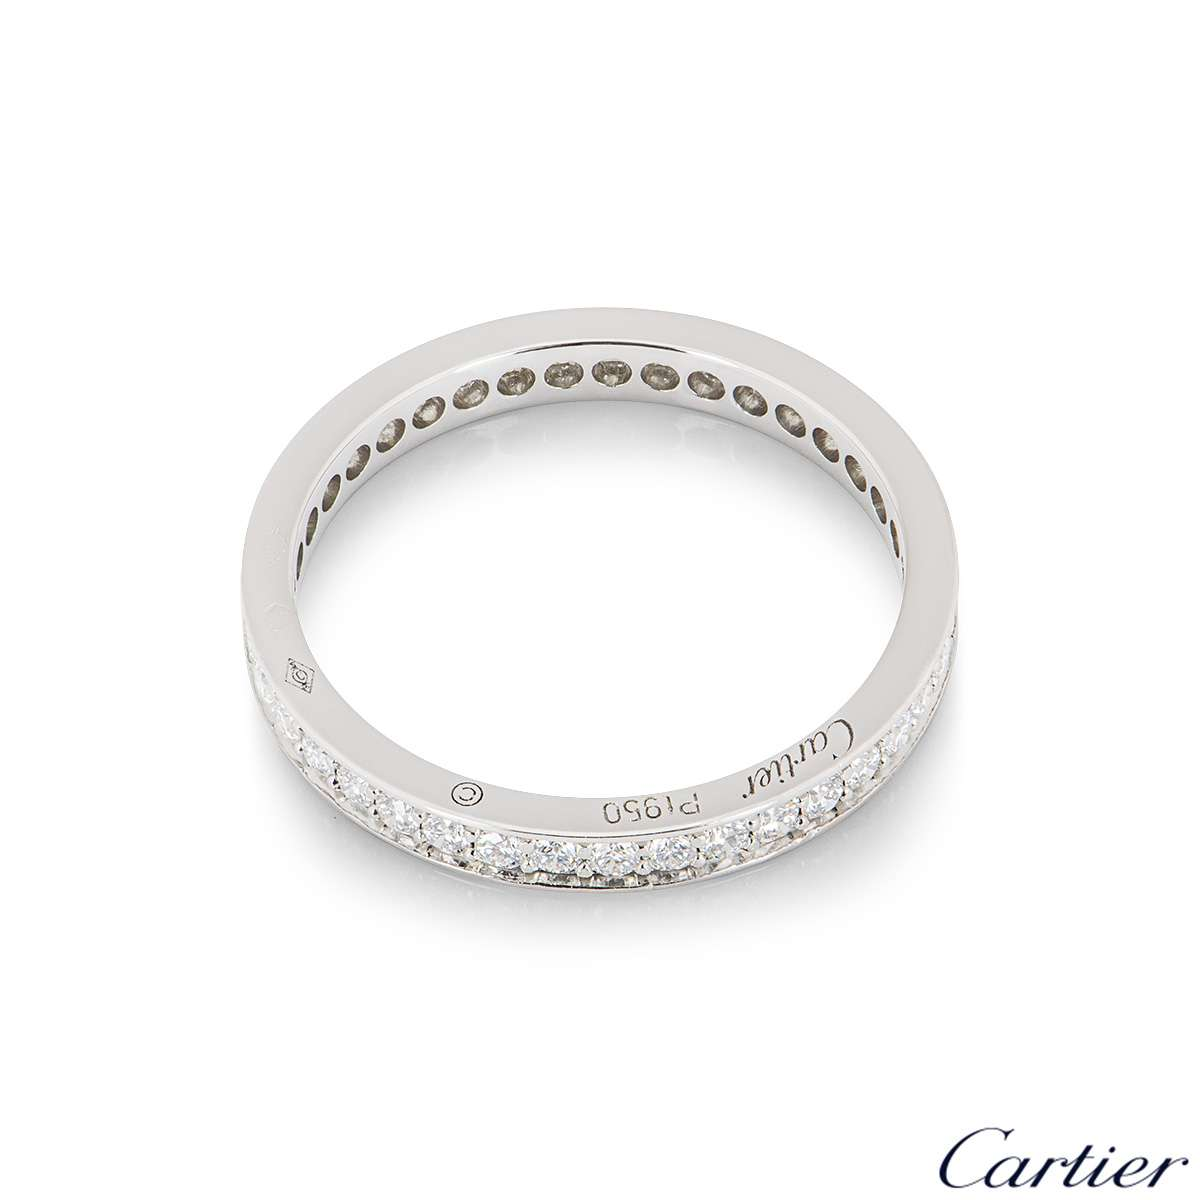 Cartier Platinum Ballerine Diamond Wedding Ring